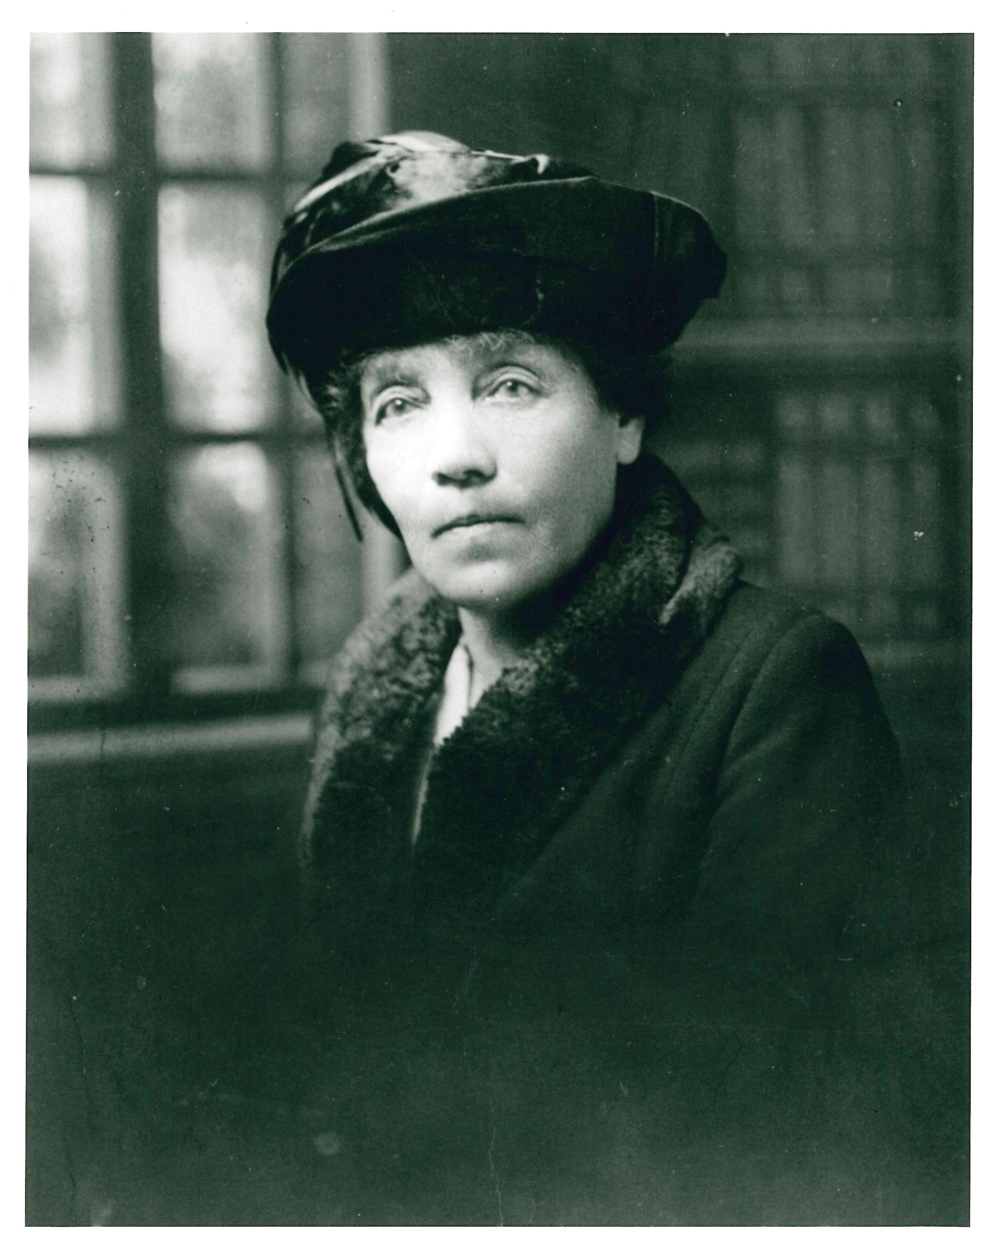 A portrait of Belle Lougheed in hat and winter coat with fur collar.